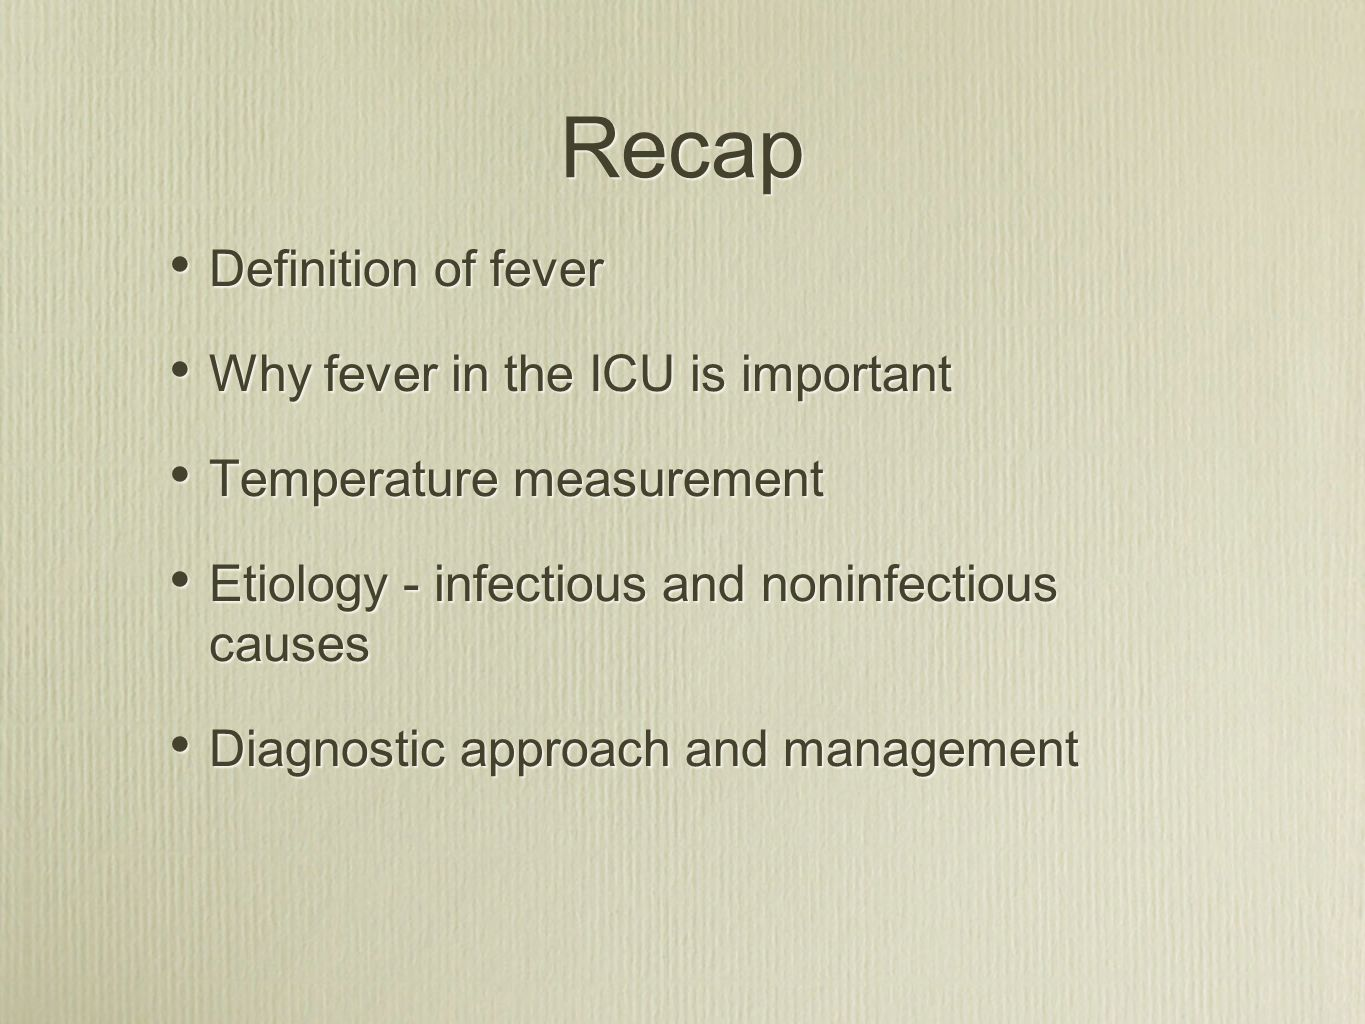 Recap Definition of fever Why fever in the ICU is important